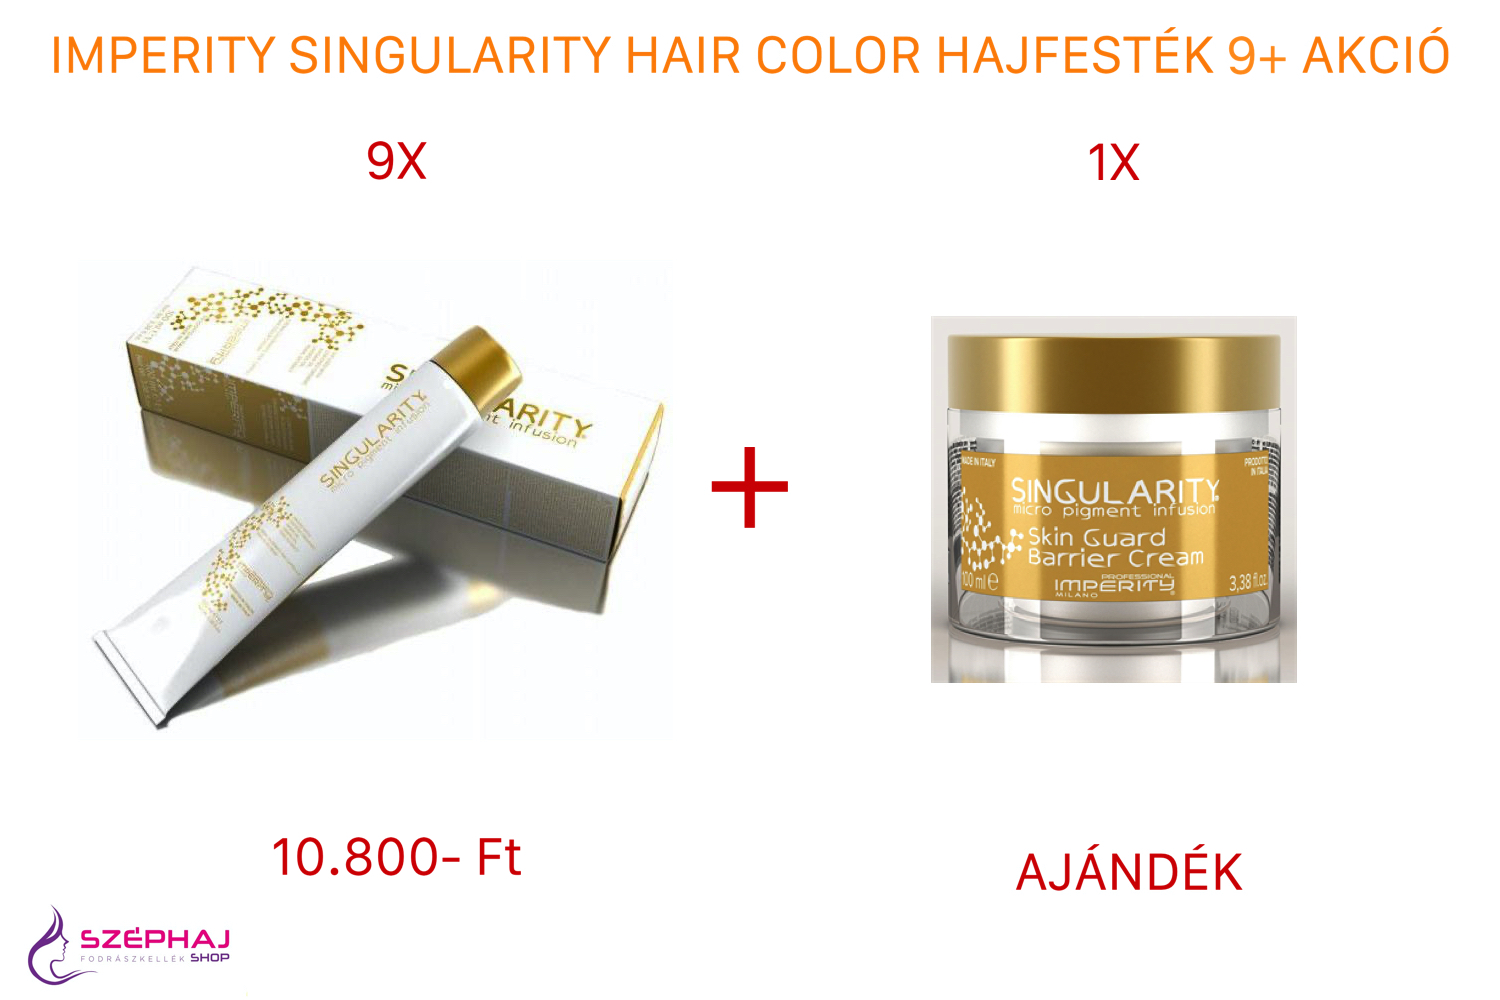 IMPERITY Singularity Hair Color Cream 100 ml 9+ AKCIÓ